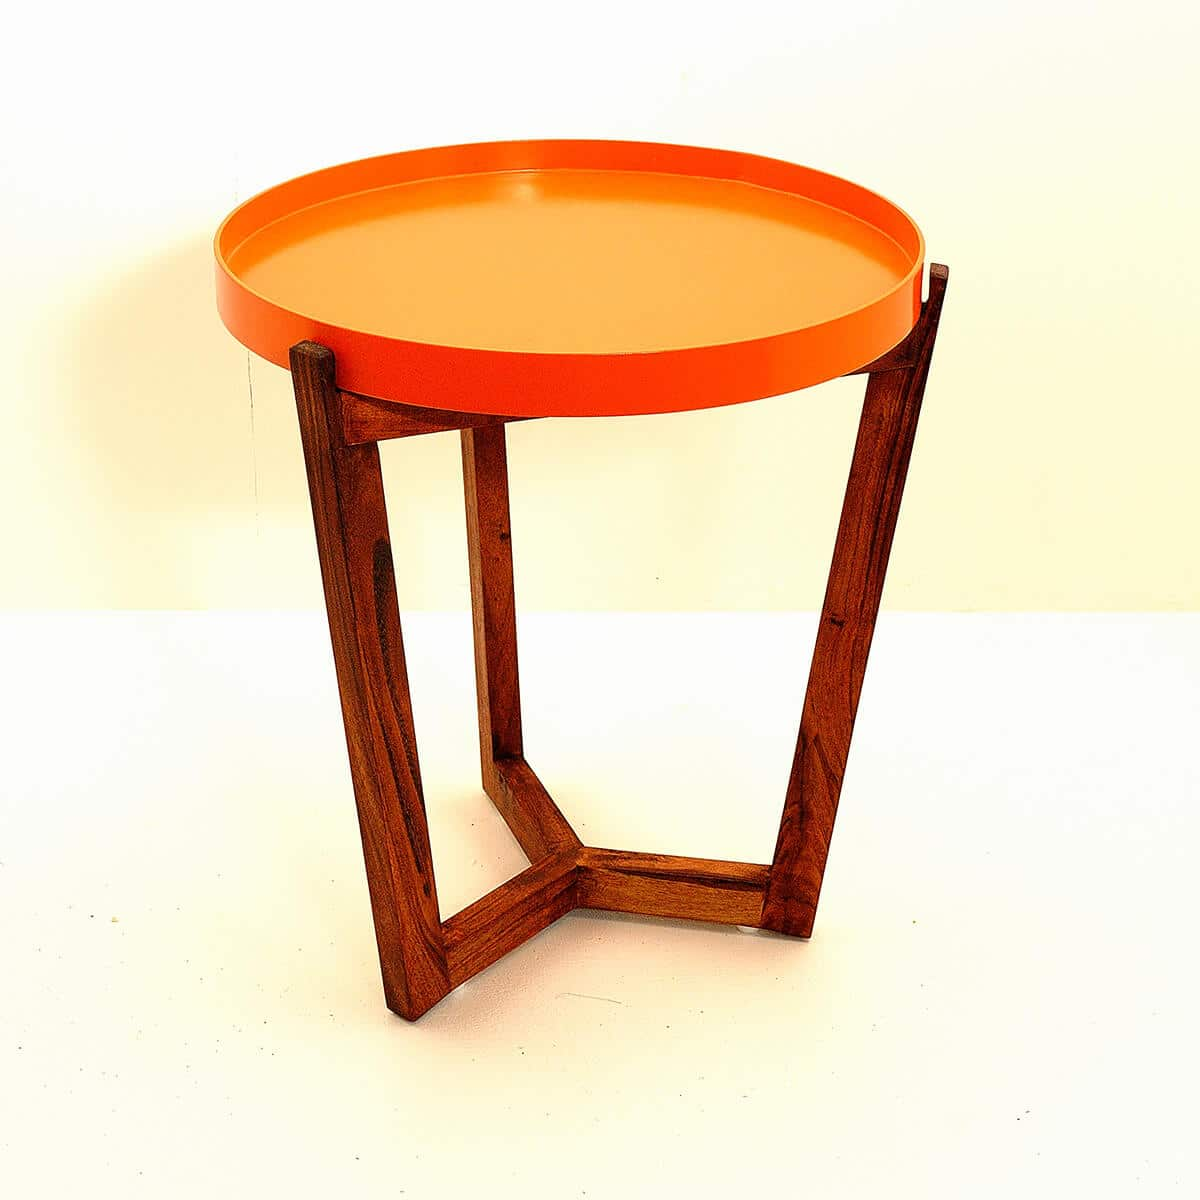 Table De Chavet Table De Chevet Kirsk Orange Baobab